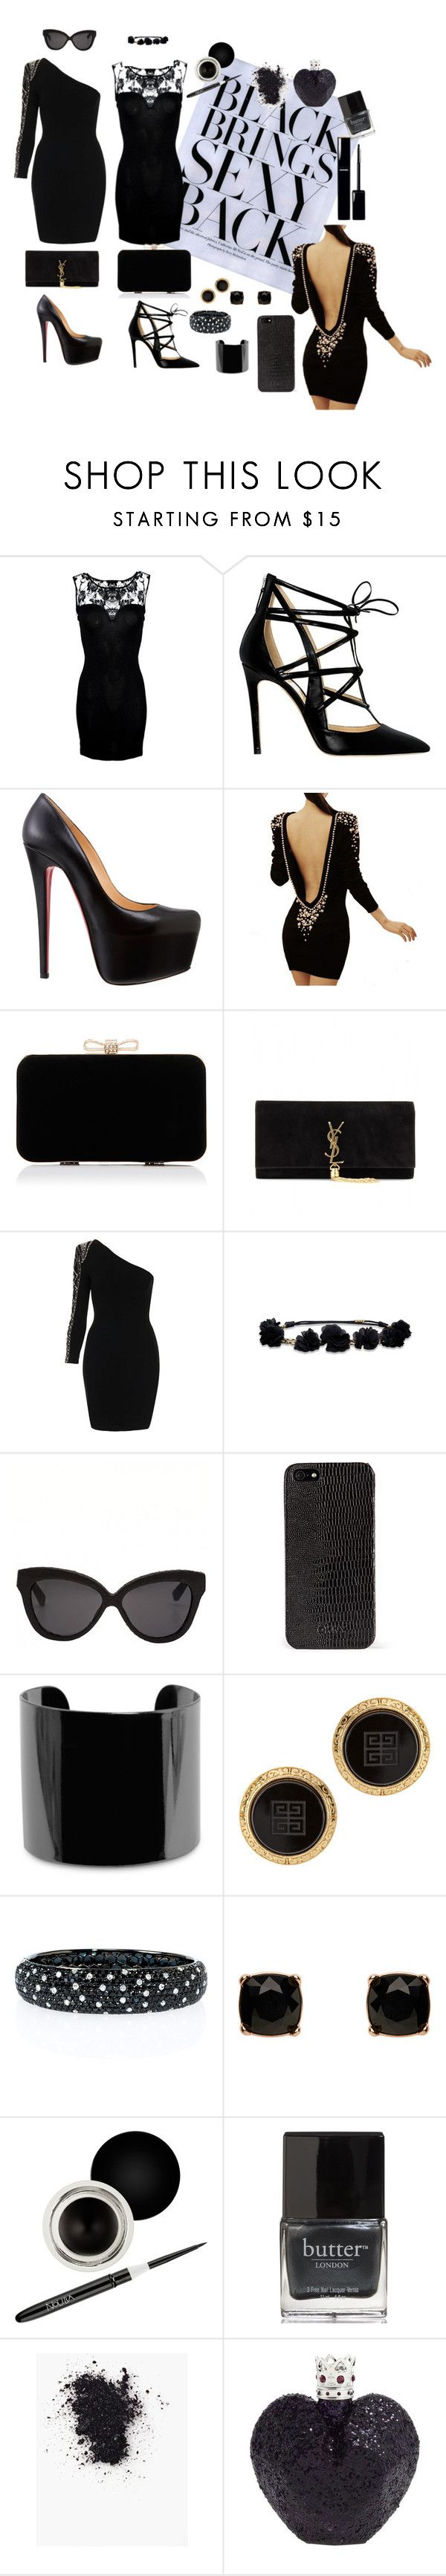 """Black"" by tashapramudita ❤ liked on Polyvore featuring Alejandro Ingelmo, Christian Louboutin, Forever New, Yves Saint Laurent, TFNC, Hollister Co., Linda Farrow, DKNY, MANGO and Susan Caplan Vintage"